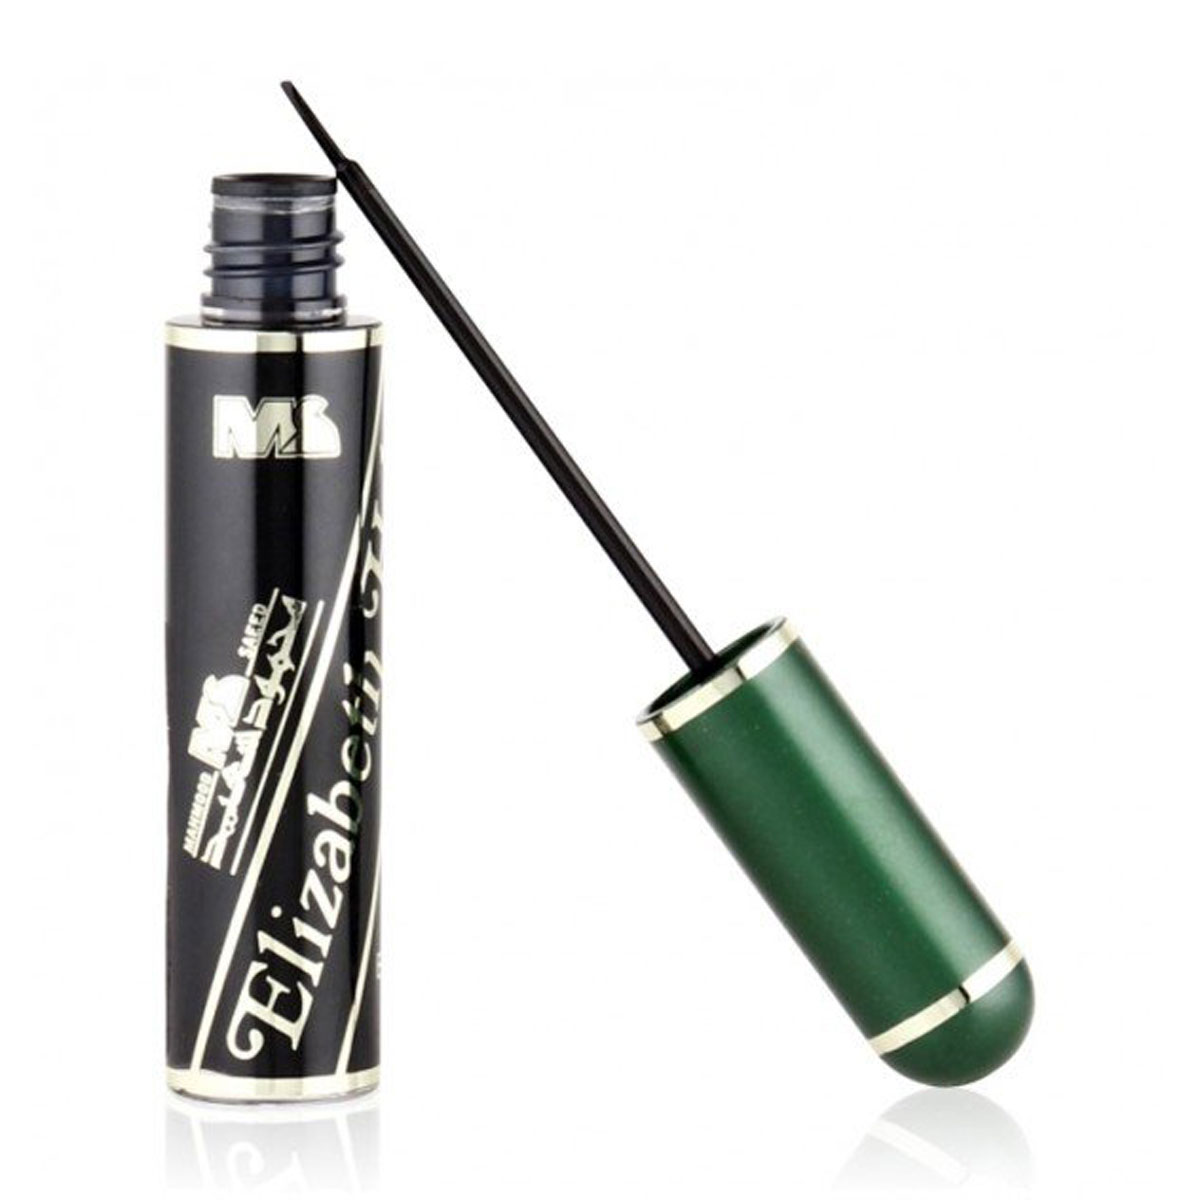 Eyeliner Mahmoud Saeed, Dark Black(Liquid Kohl)